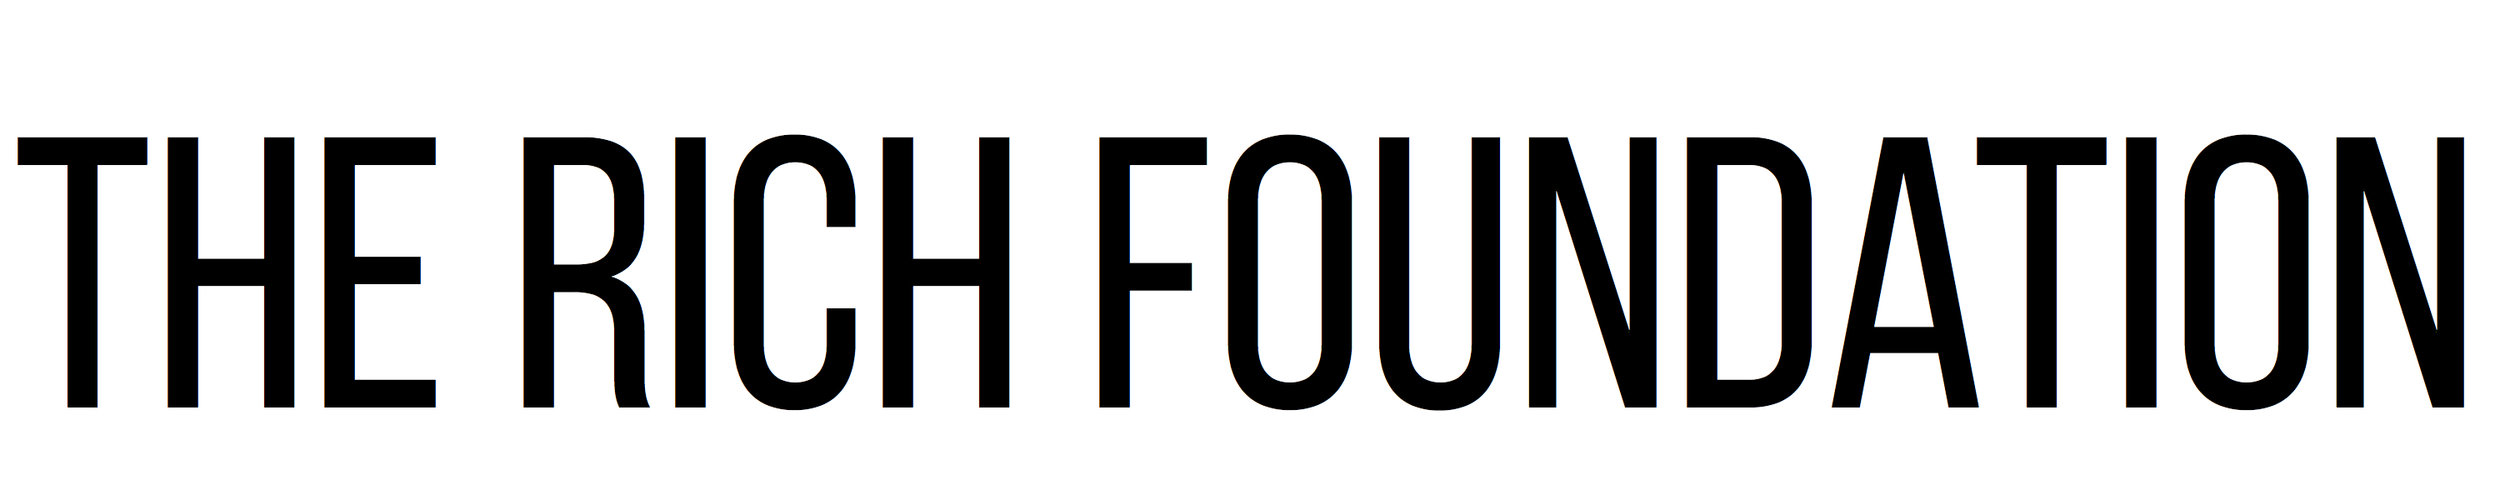 The Rich Foundation logo.jpg